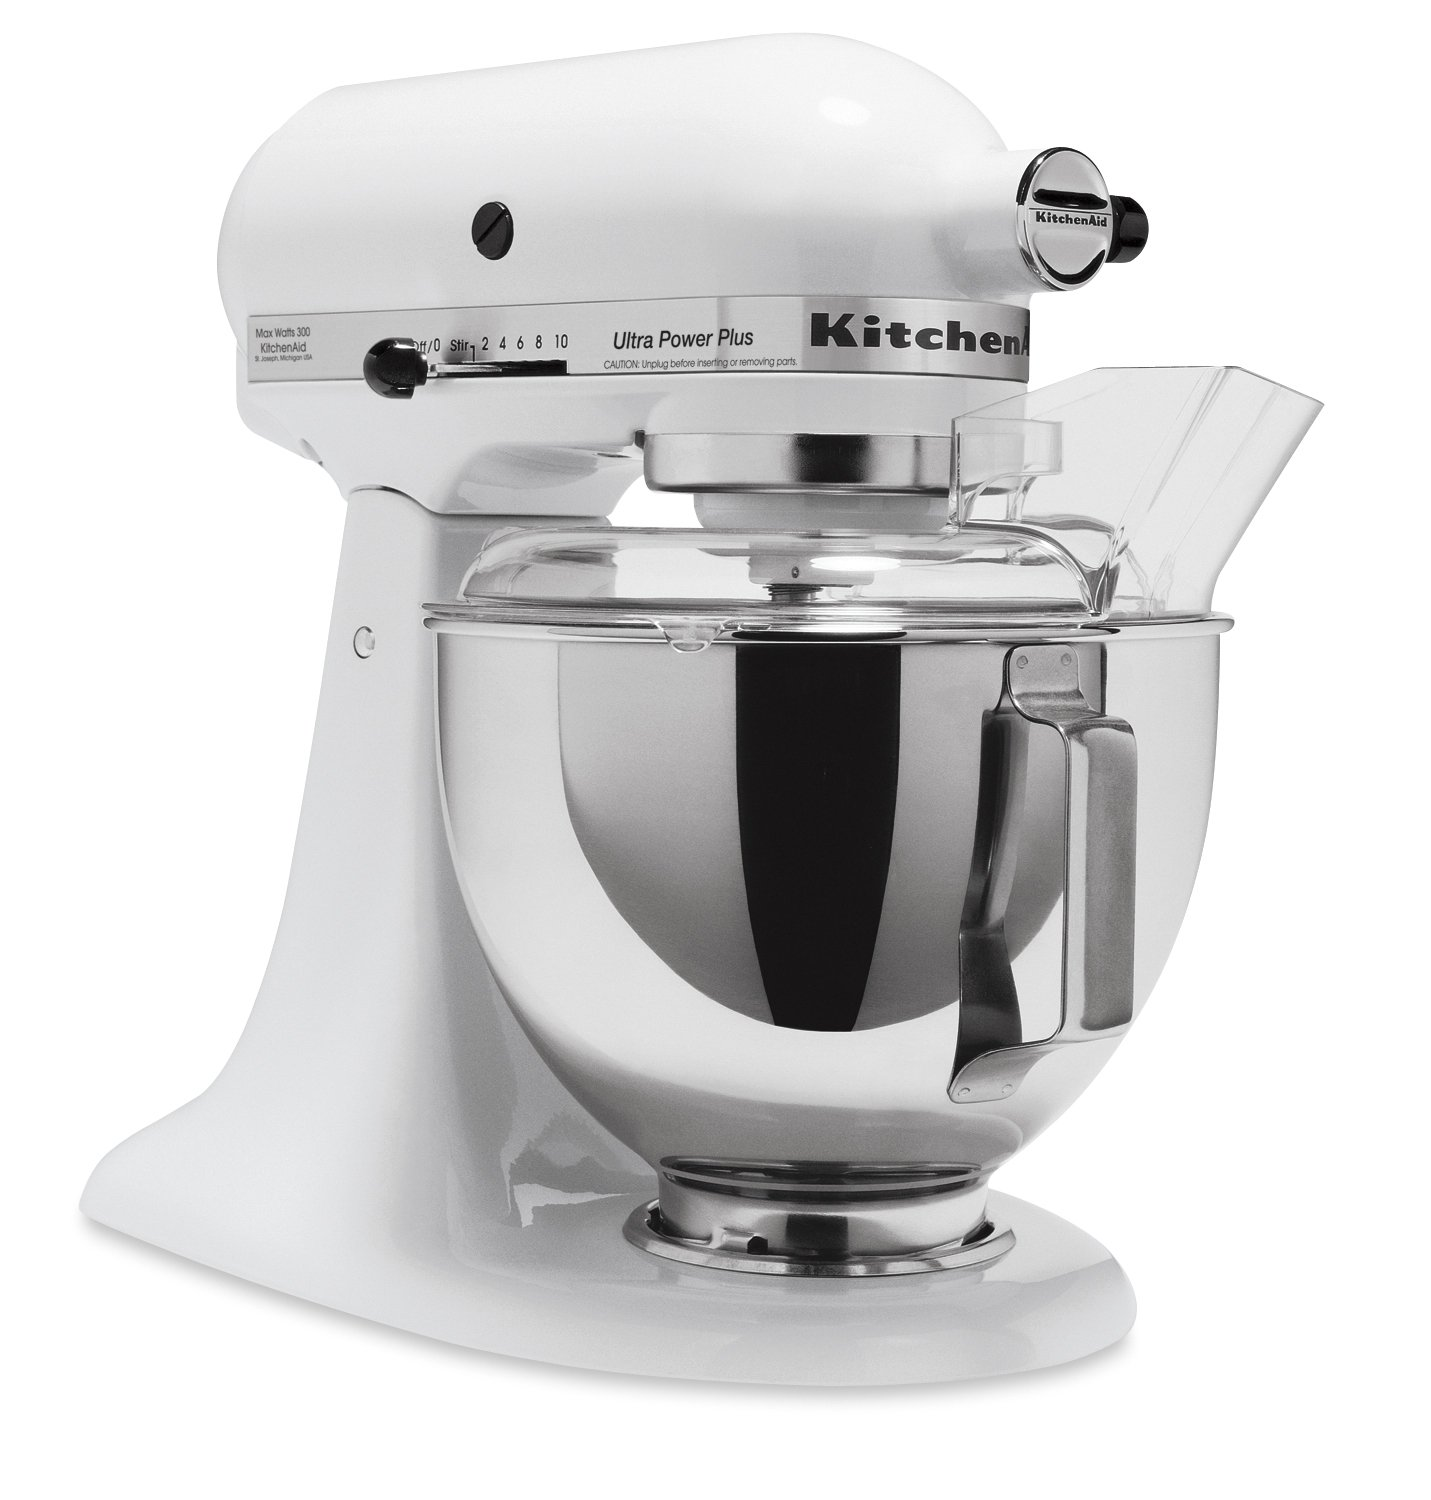 KitchenAid KSM100PSWH Ultra Power Plus Stand Mixer, White: Amazon ...